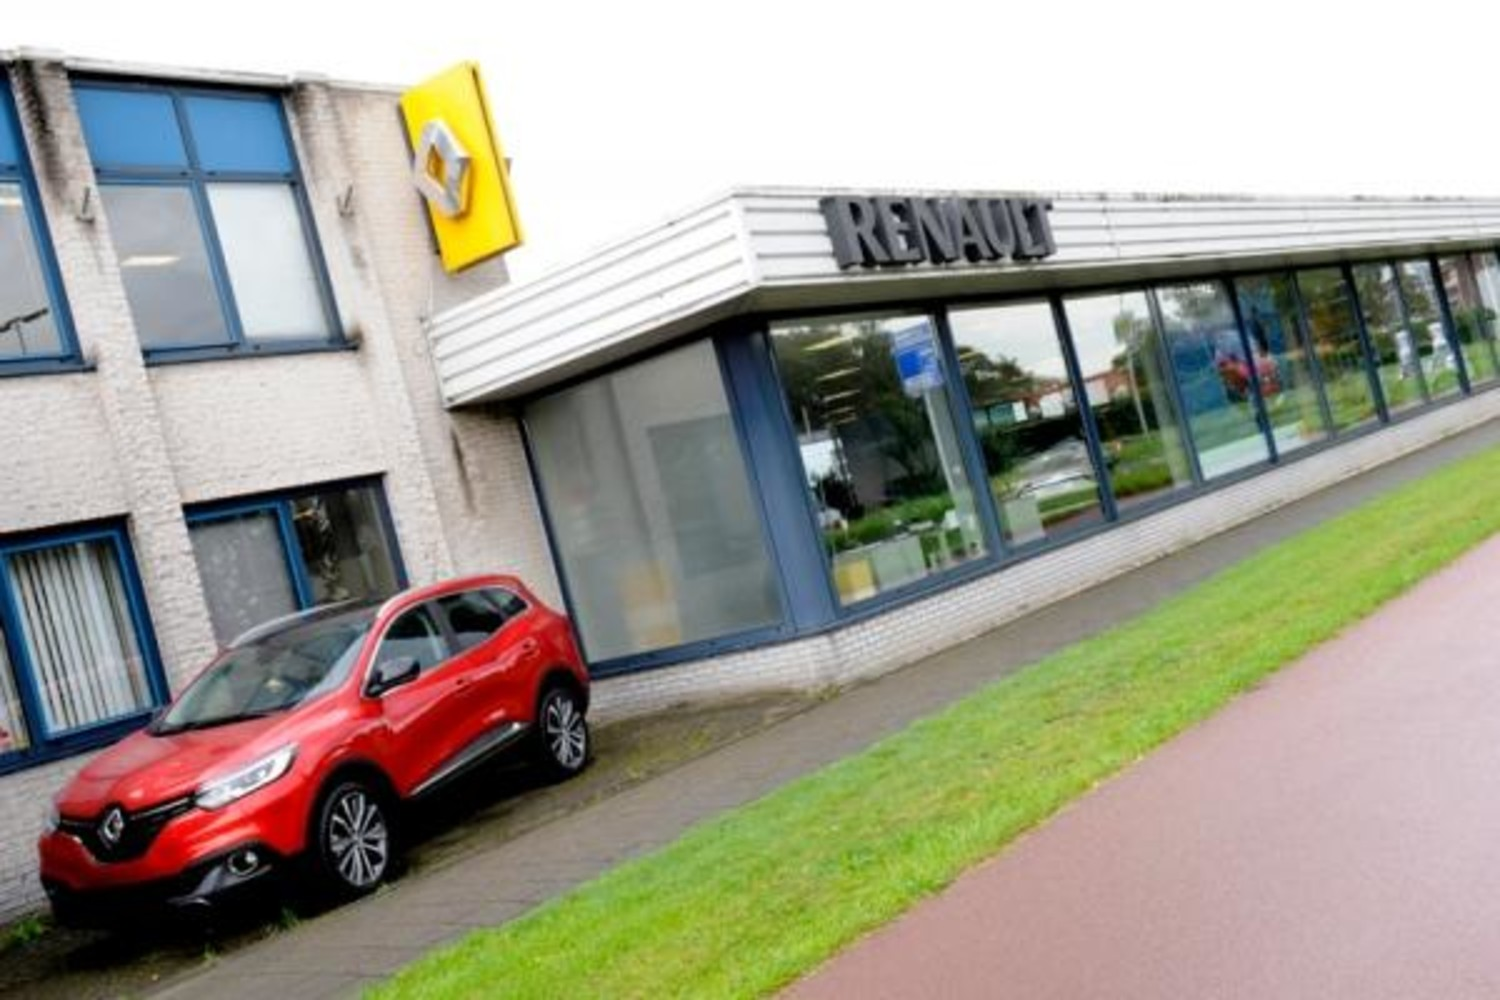 Arend auto Renault - Foto 2